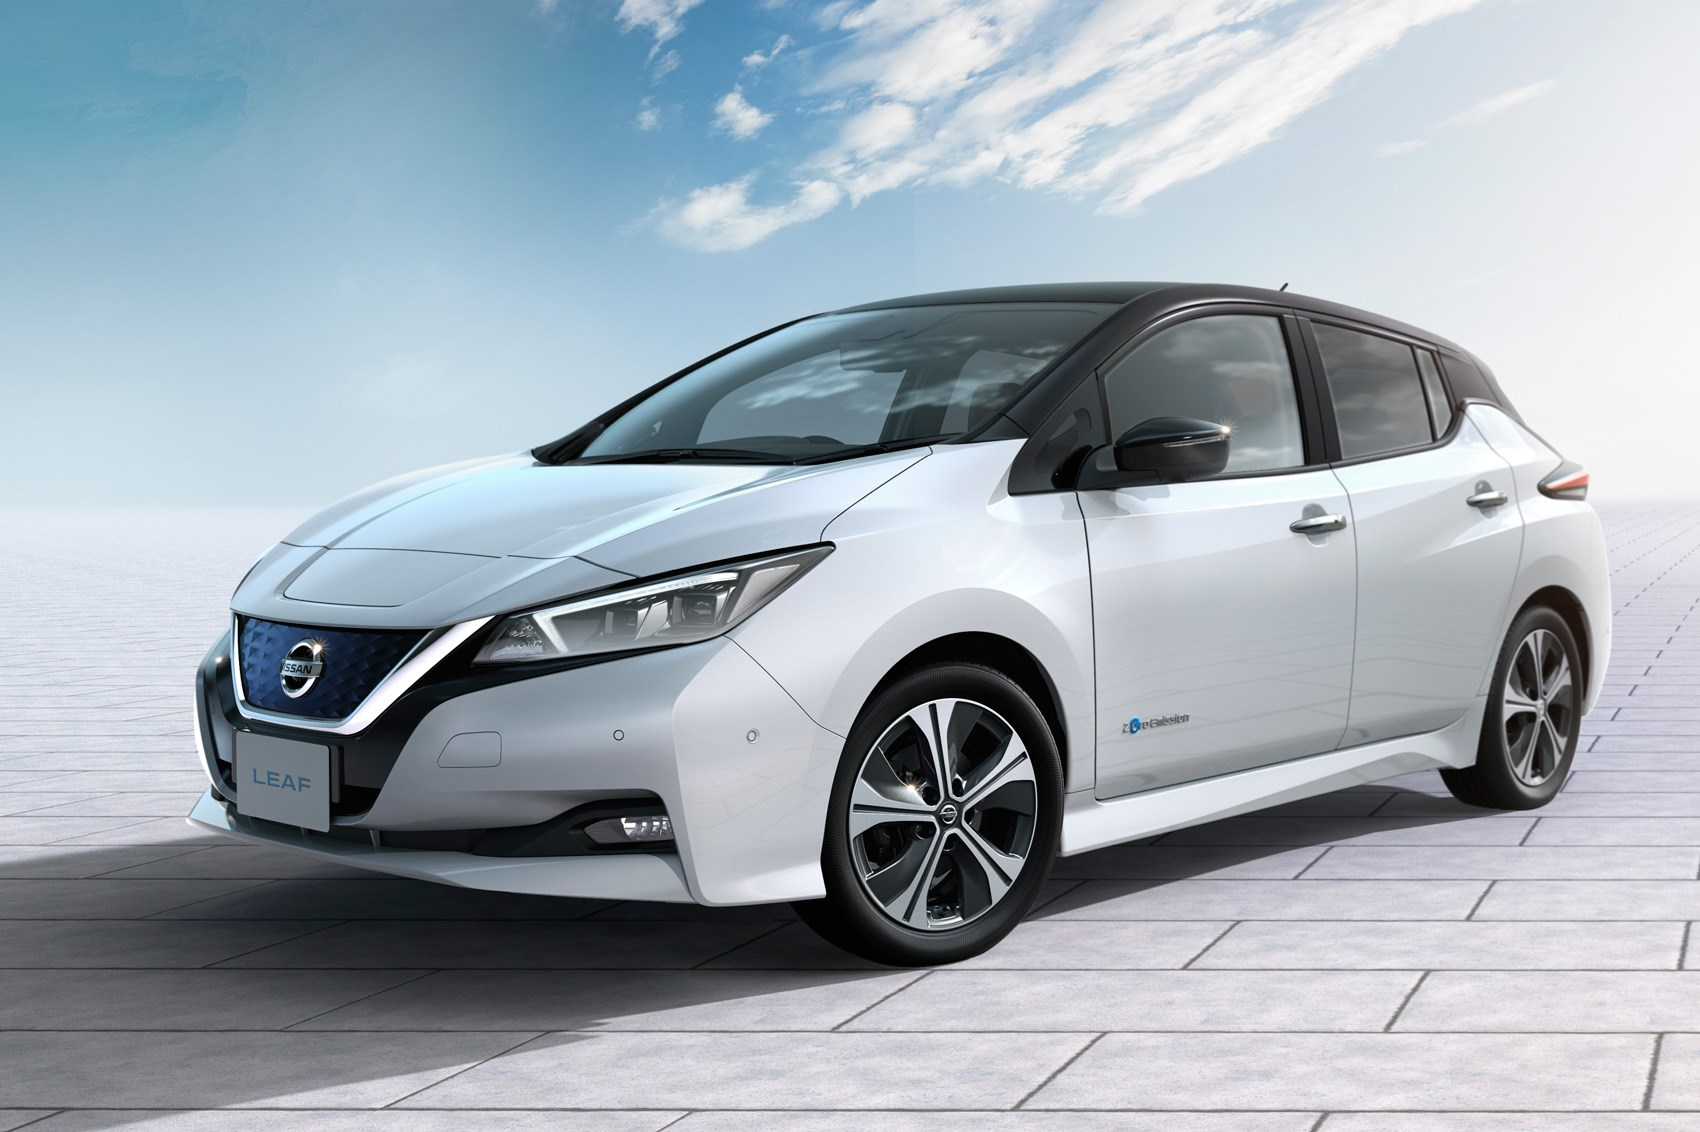 nissan_leaf_2018_01 11.40.59 AM